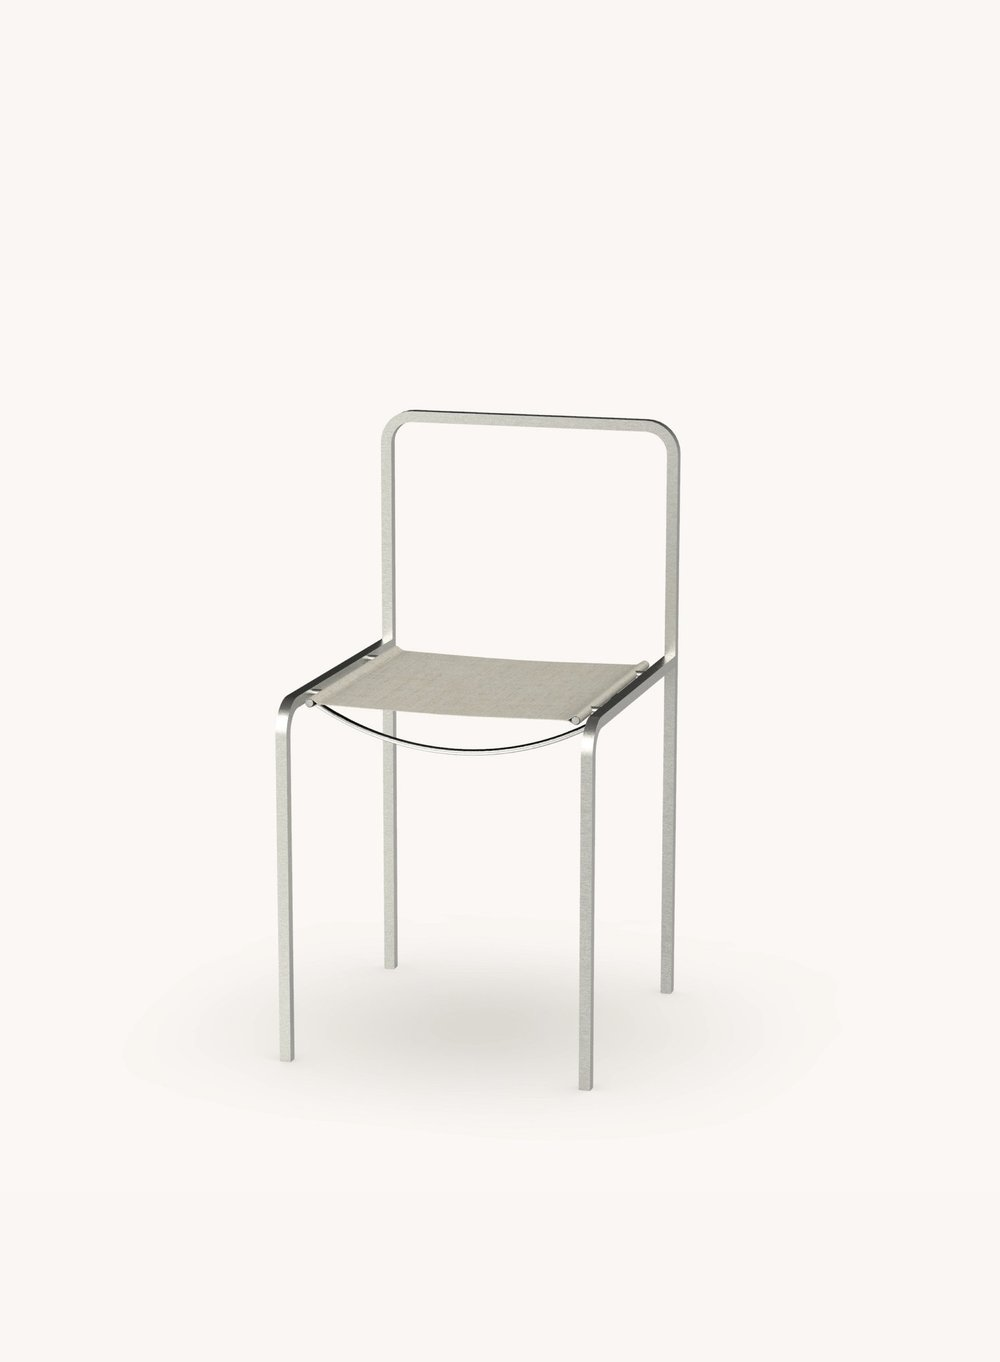 THE CHAIR. MENTON - DKK 9.900 · EUR 1327